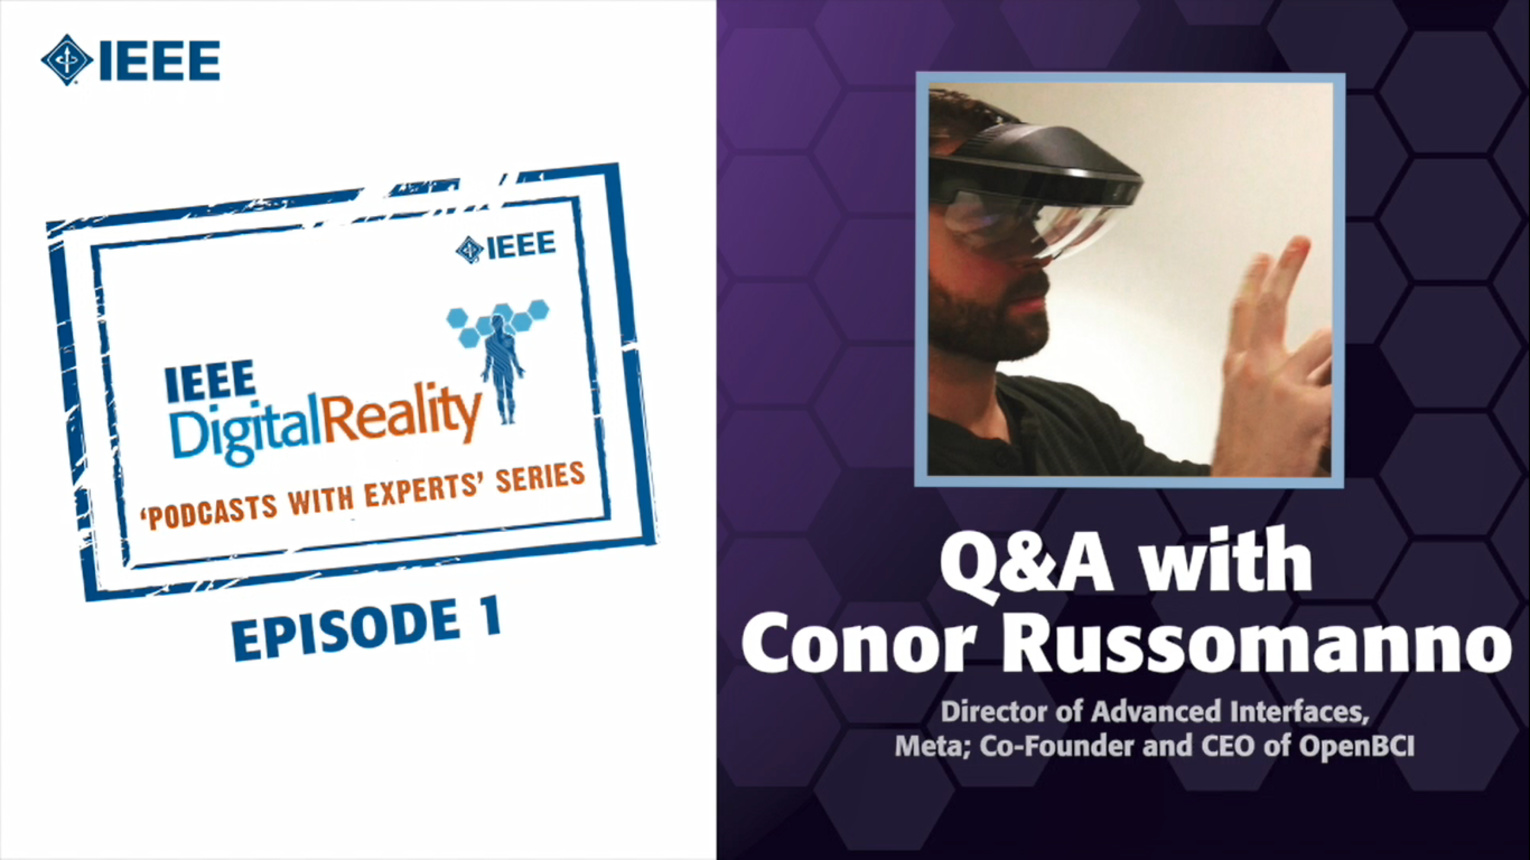 Q&A with Connor Russomanno: IEEE Digital Reality Podcast, Episode 1